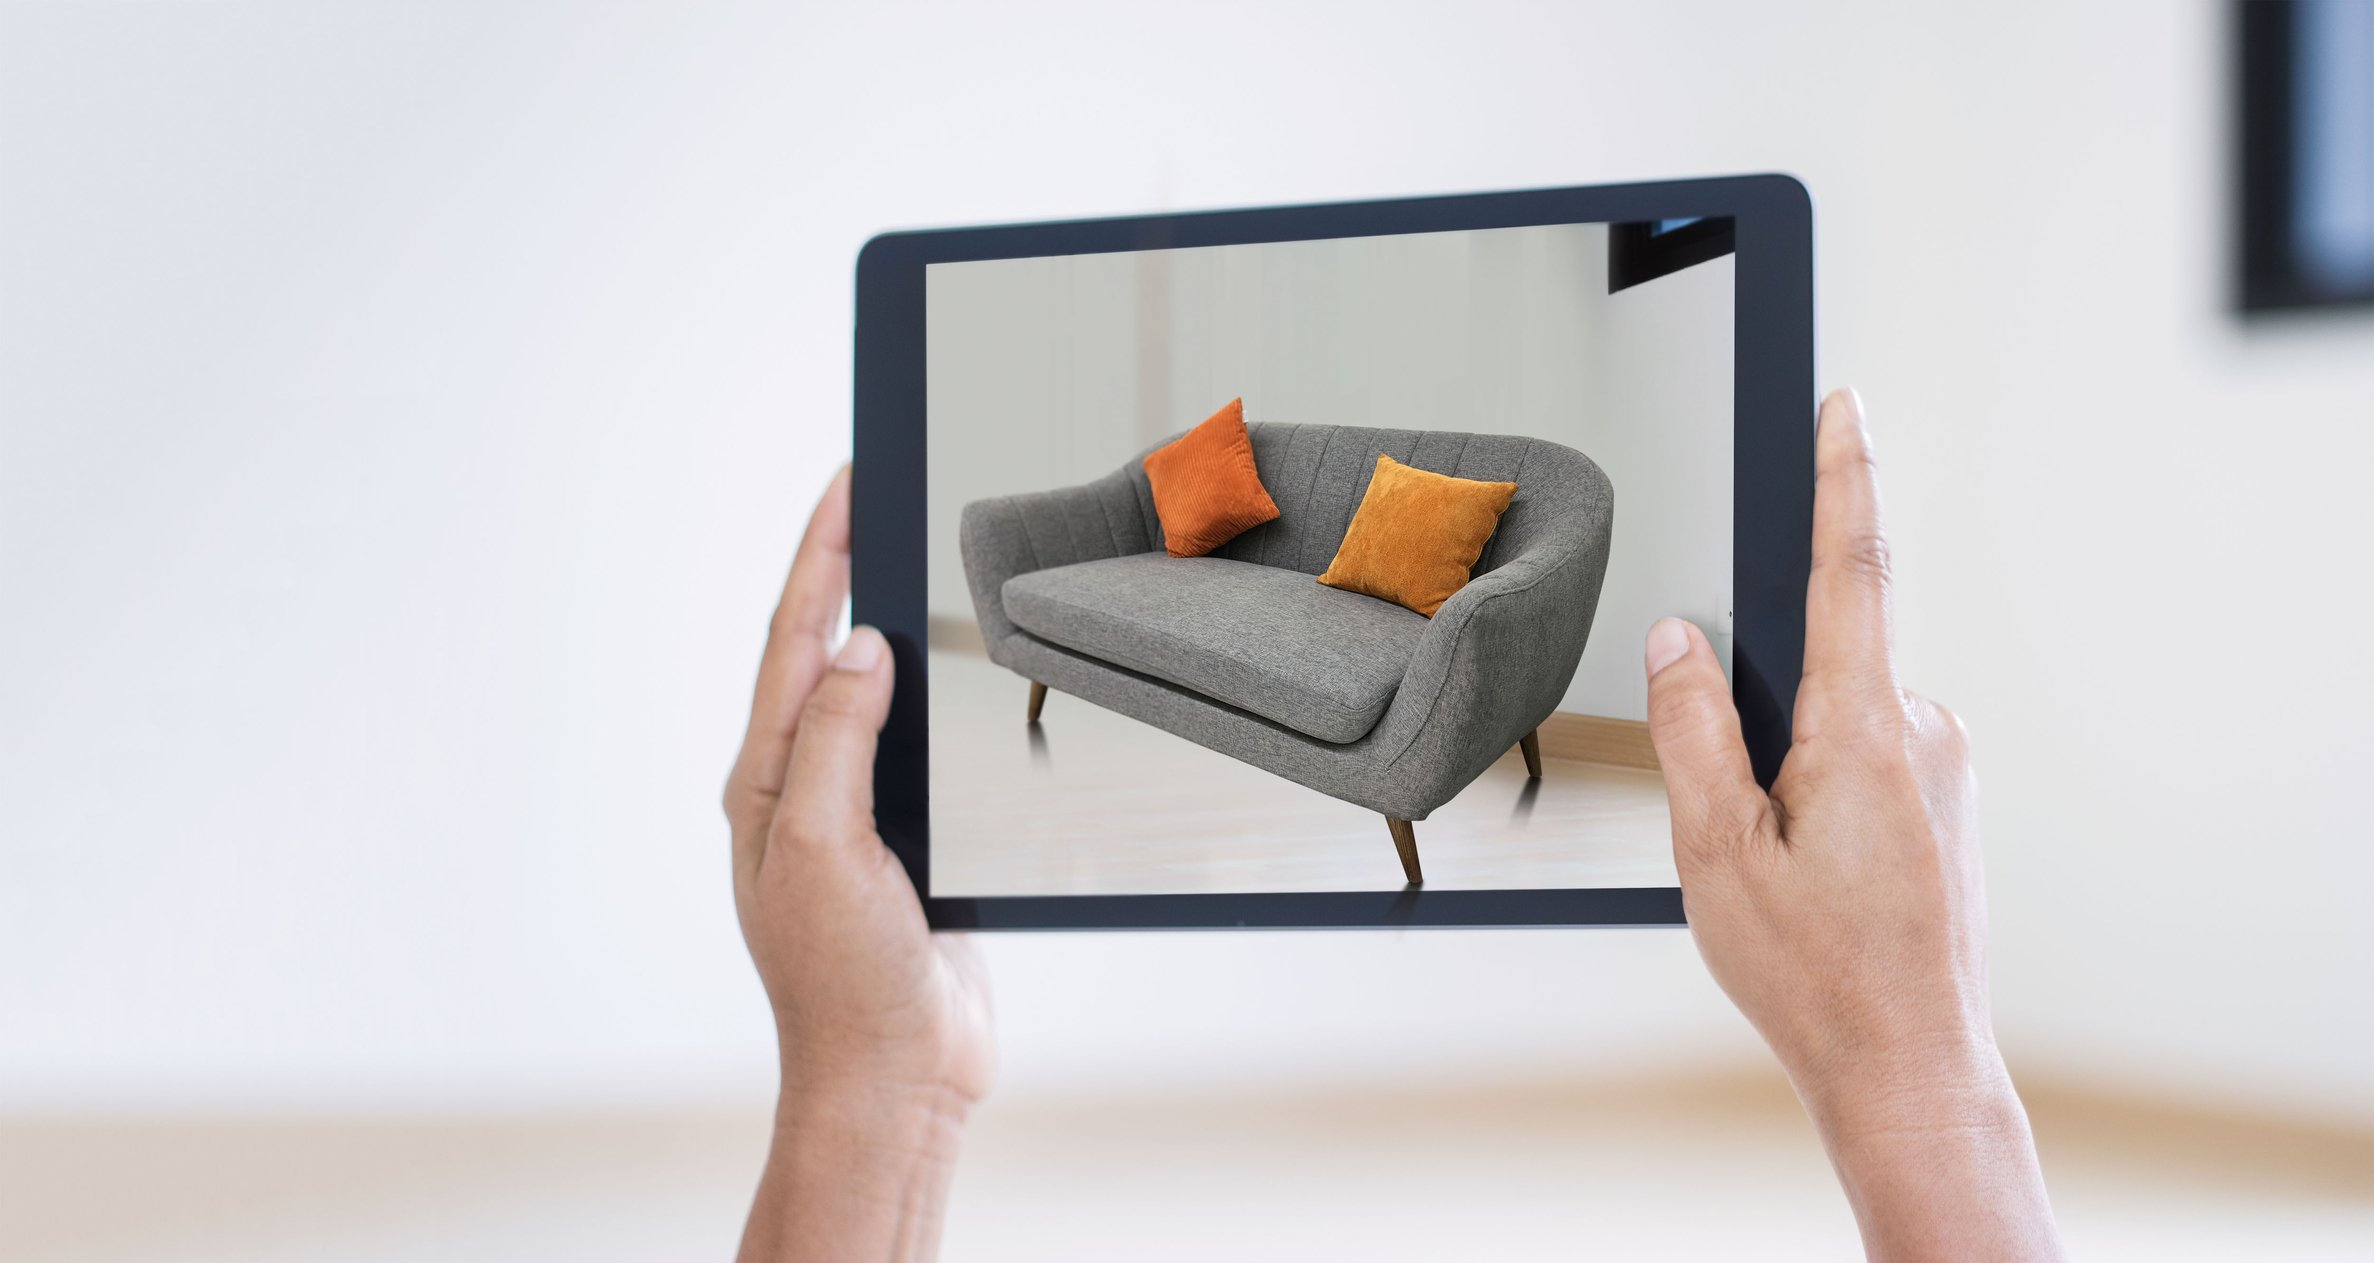 AR augmented reality. Hand holding digital tablet, AR application, simulate sofa furniture and and interior design real room background, modern technology.